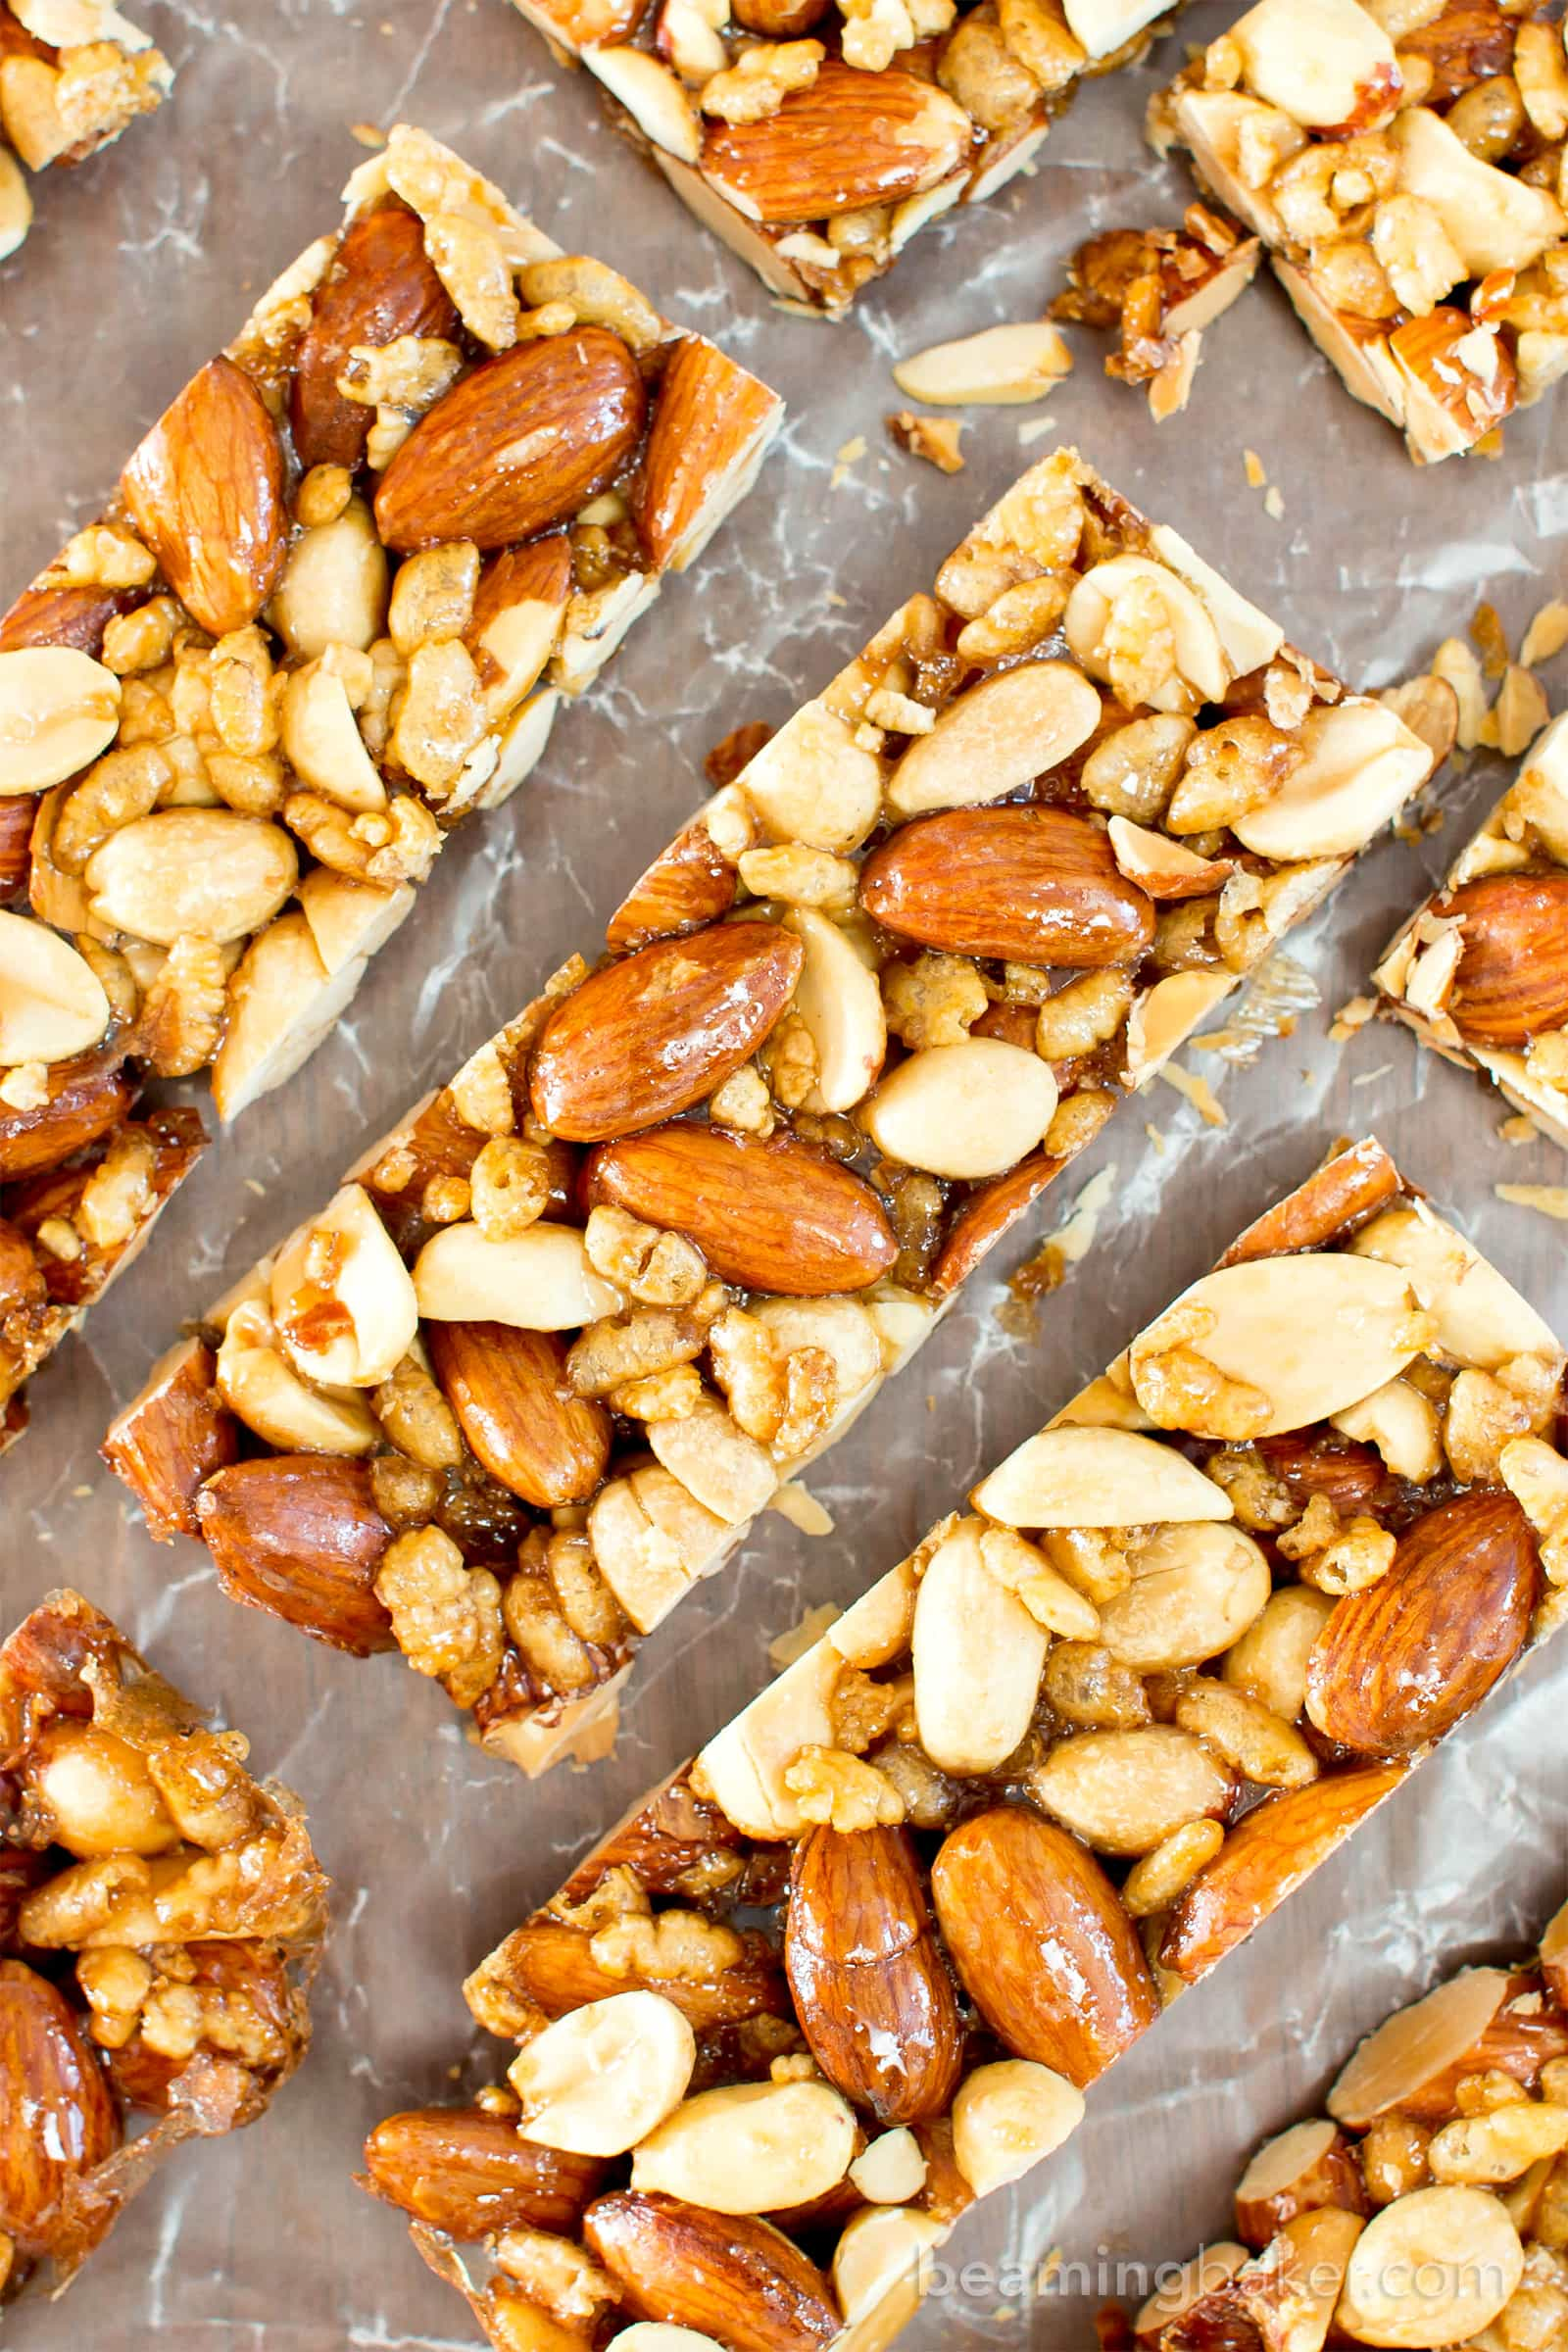 Merveilleux 5 Ingredient Homemade KIND Nut Bars (V, GF, DF): An Easy